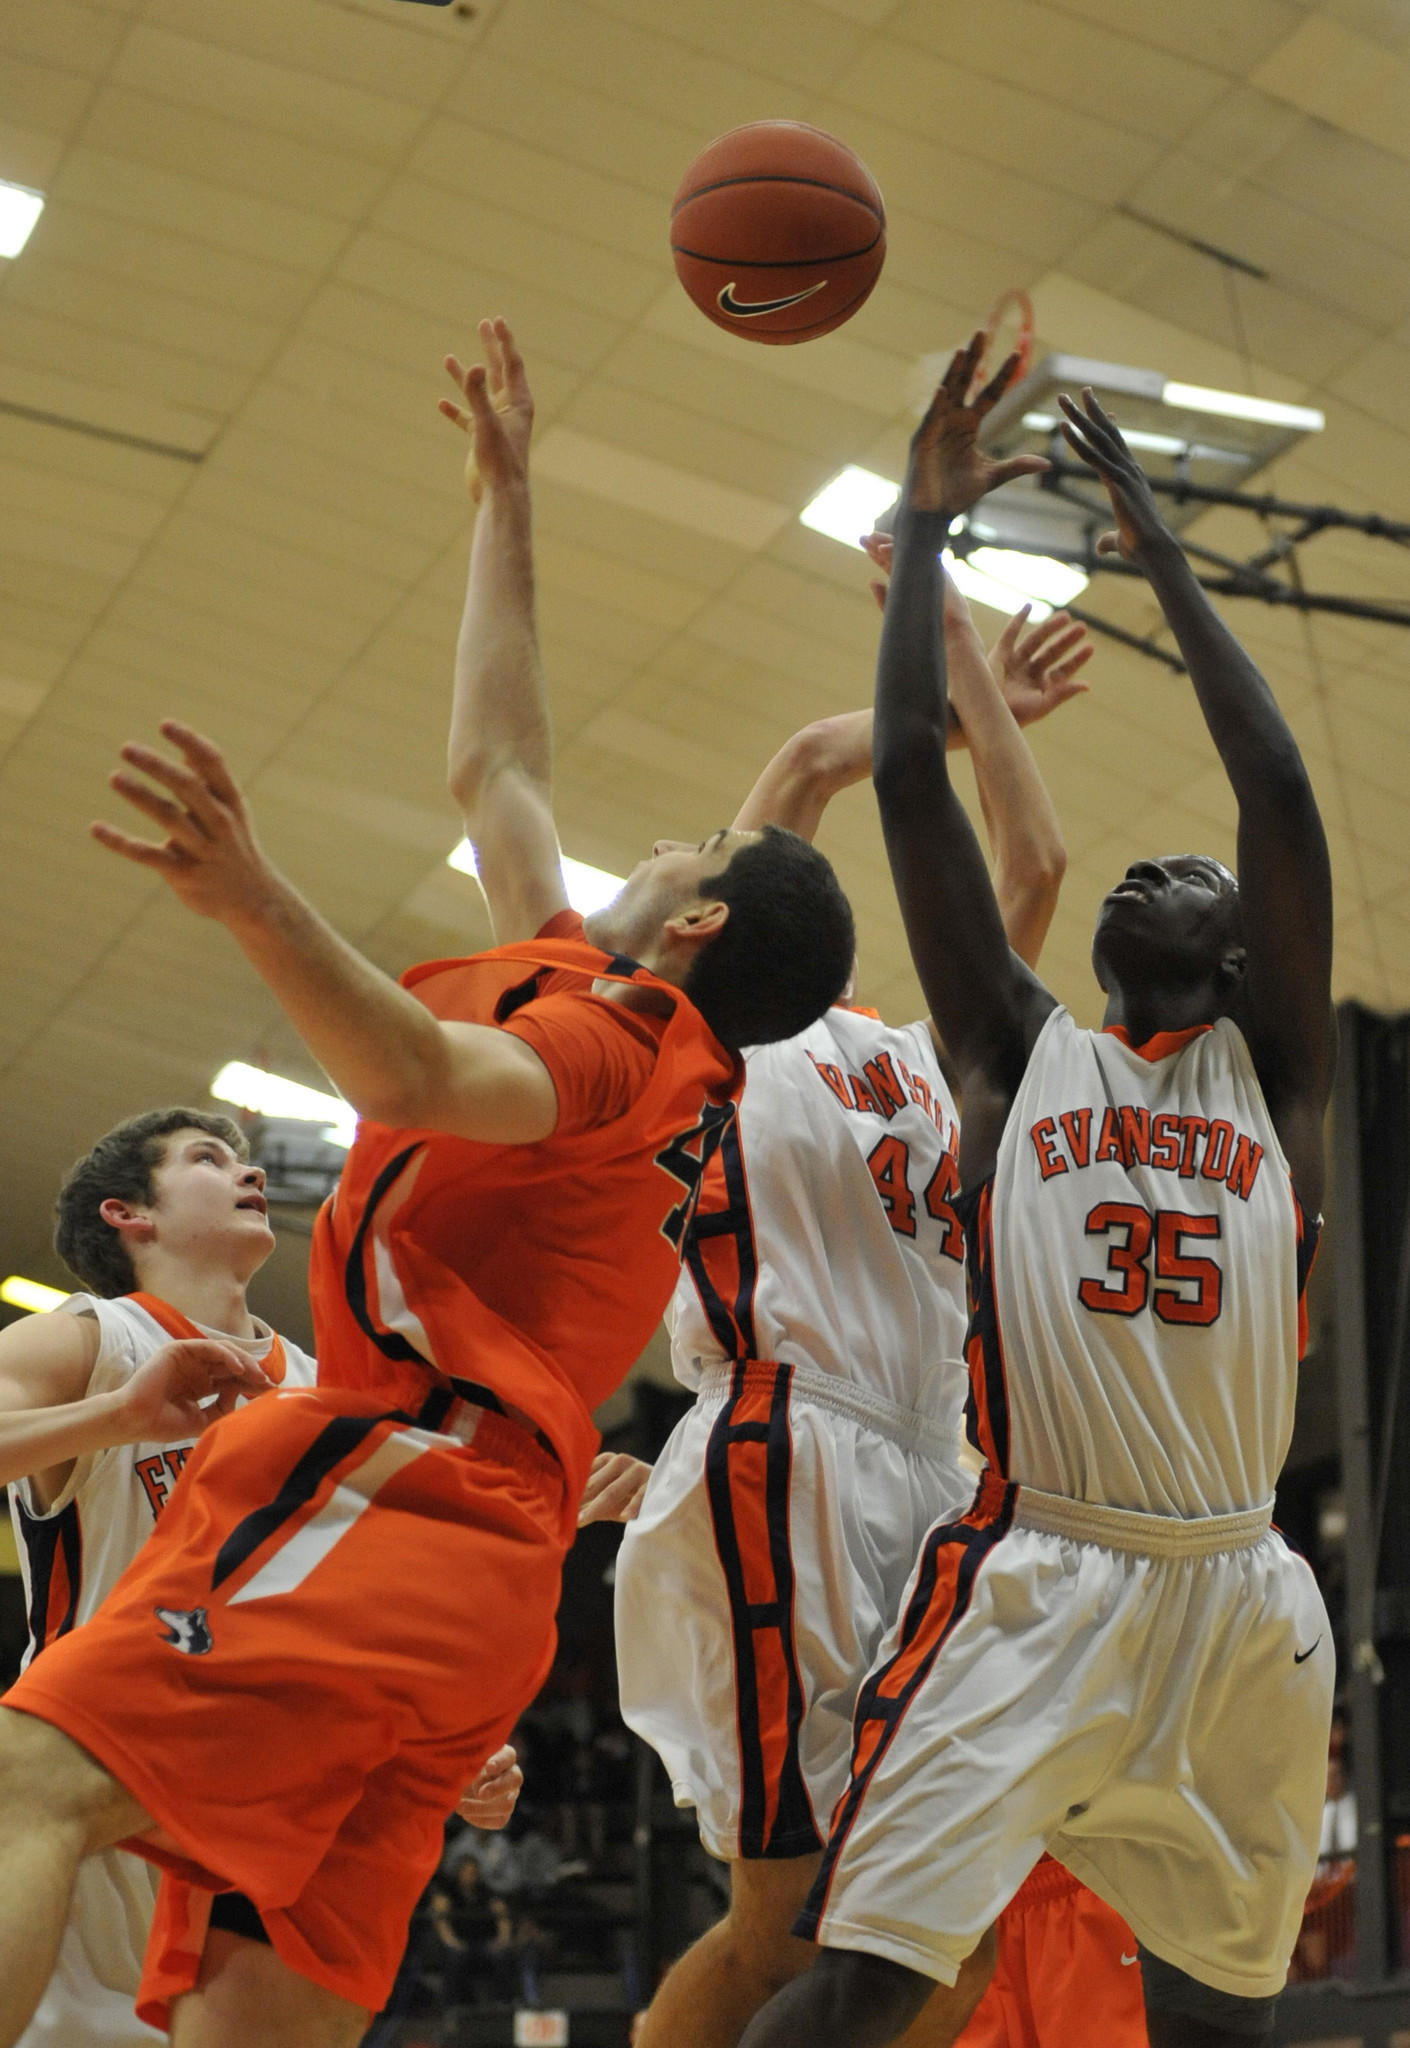 Evanston's Terrell Farmby (35) and Oak Park's Gabe Levin (left) go for a rebound during a January, 2012 game.